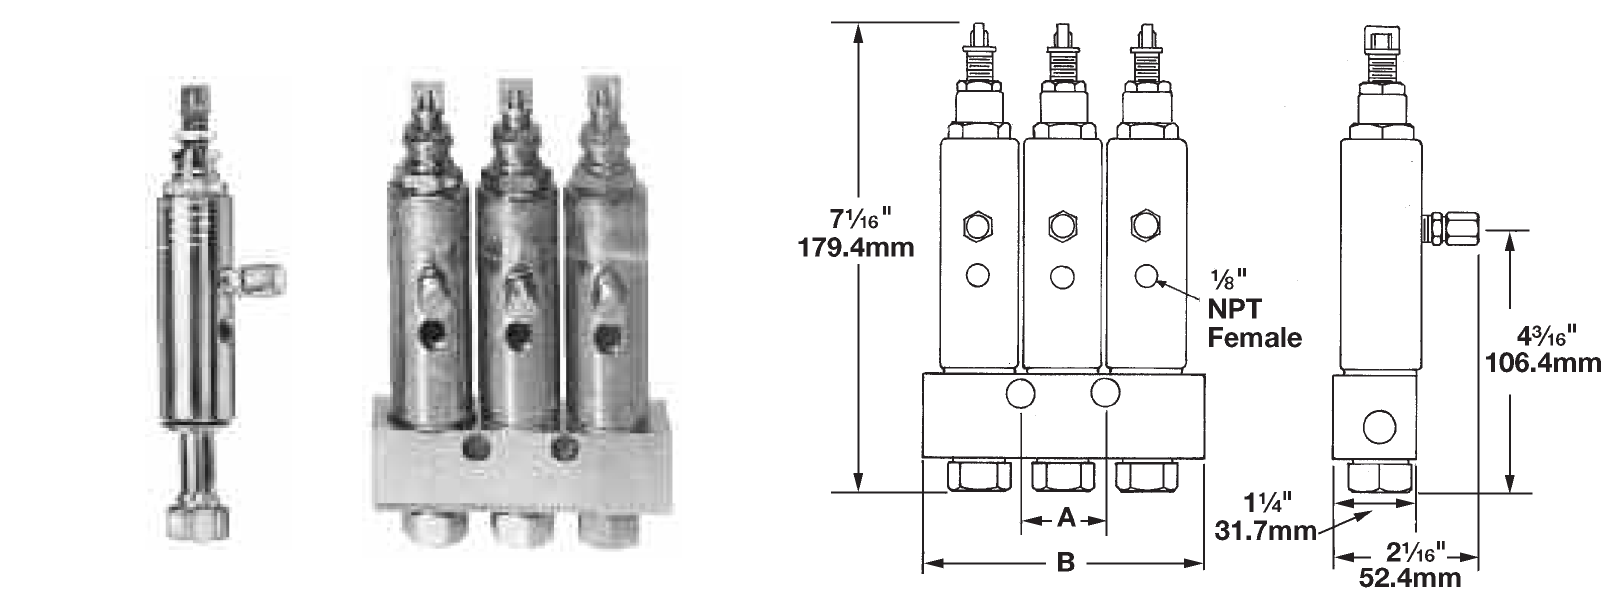 Centromatic Injector SL 1